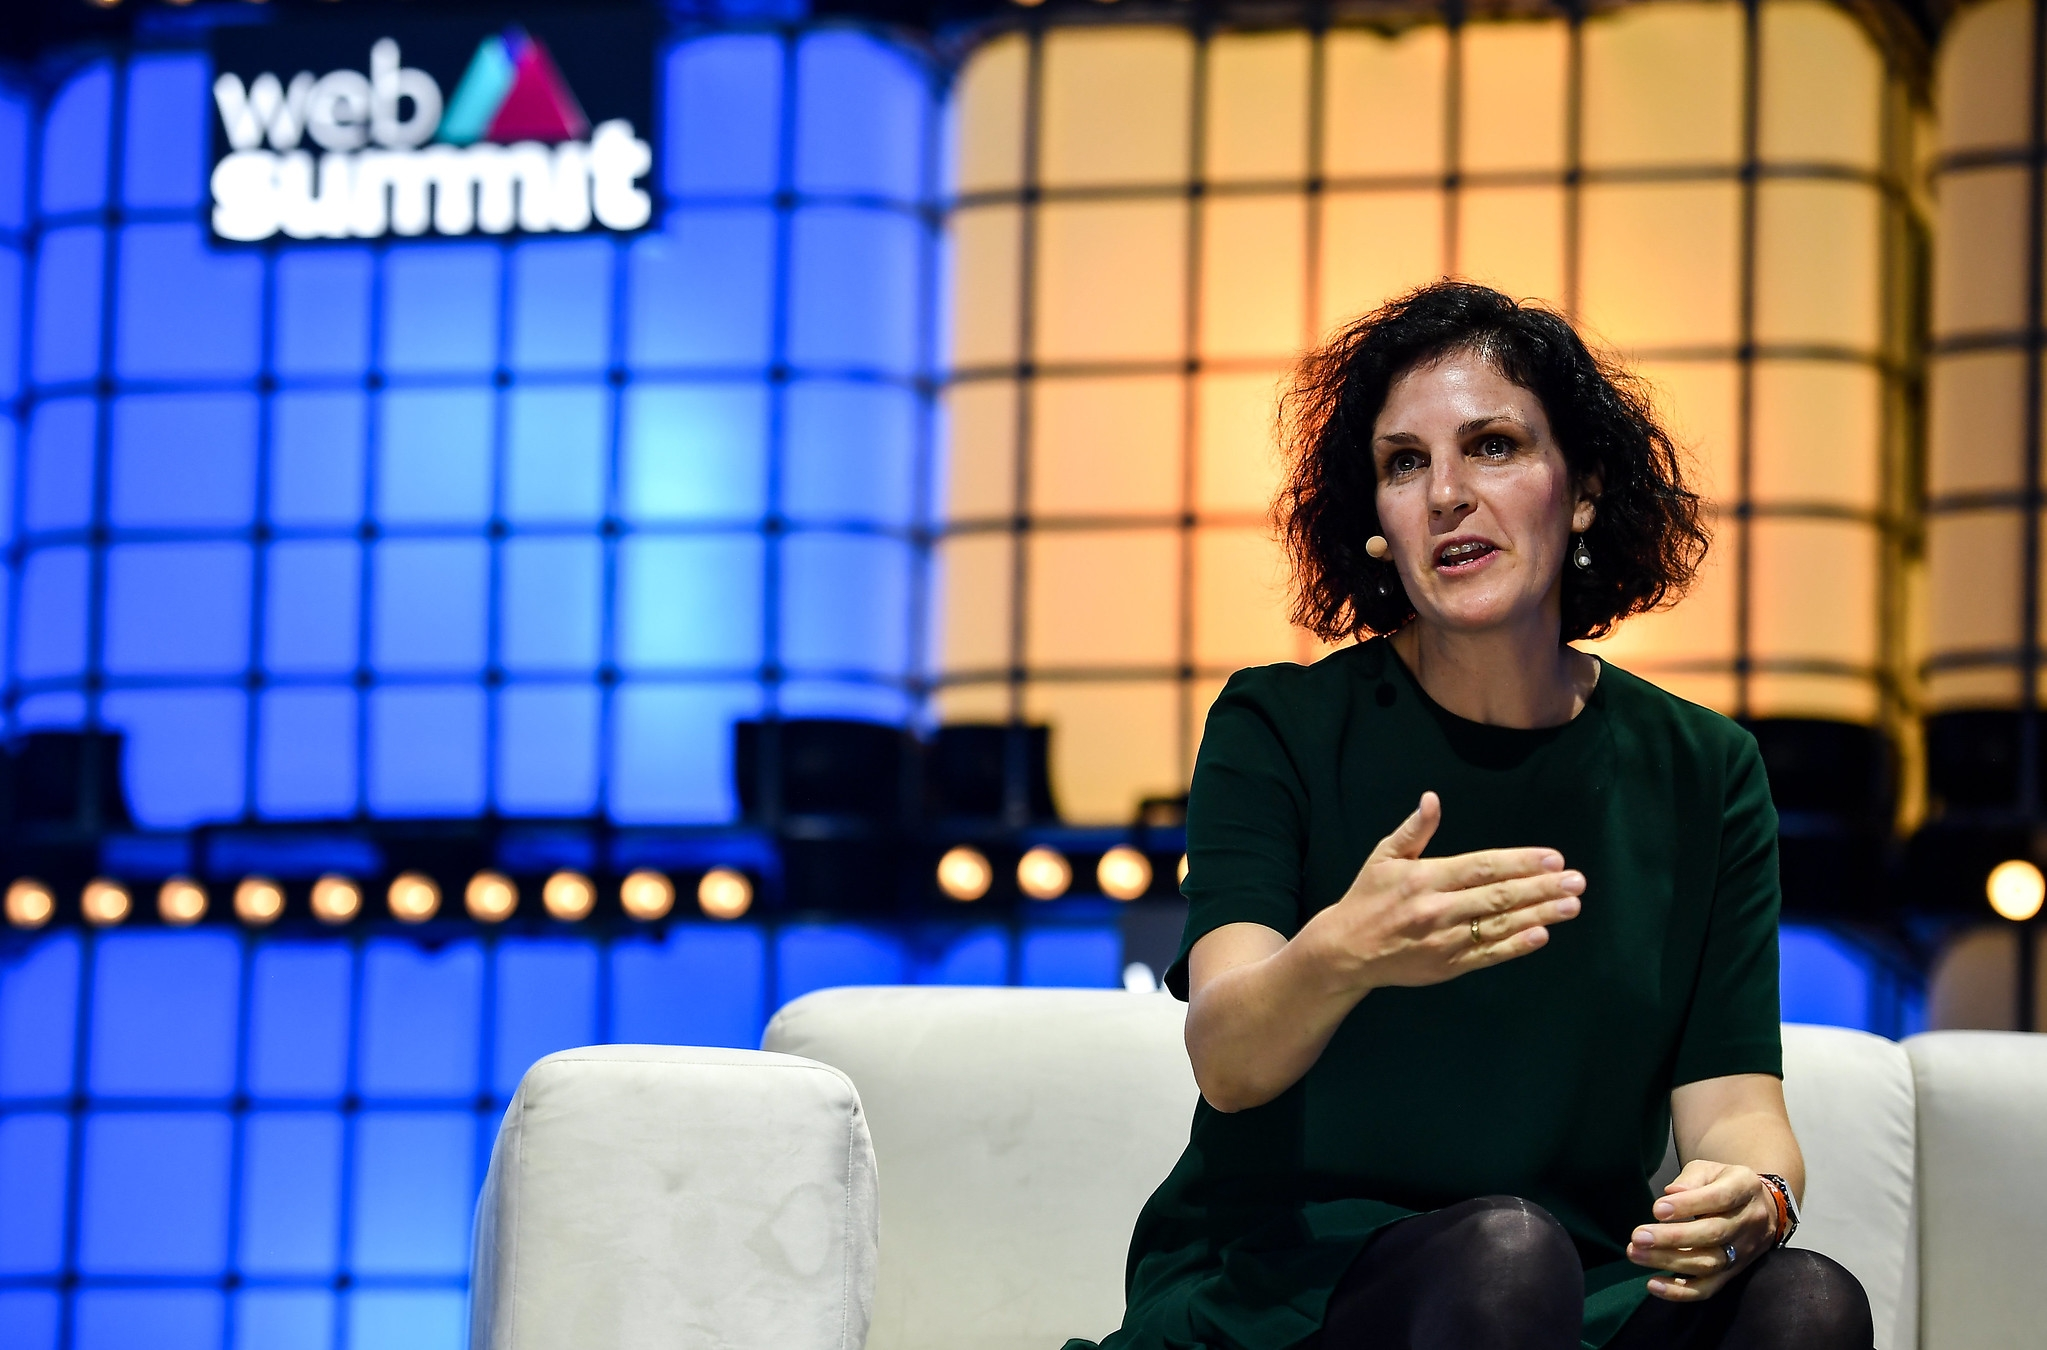 5 November 2019; Barbara Martin Coppola, Chief Digital Officer, IKEA, on Centre Stage during the opening day of Web Summit 2019 at the Altice Arena in Lisbon, Portugal. Photo by David Fitzgerald/Web Summit via Sportsfile